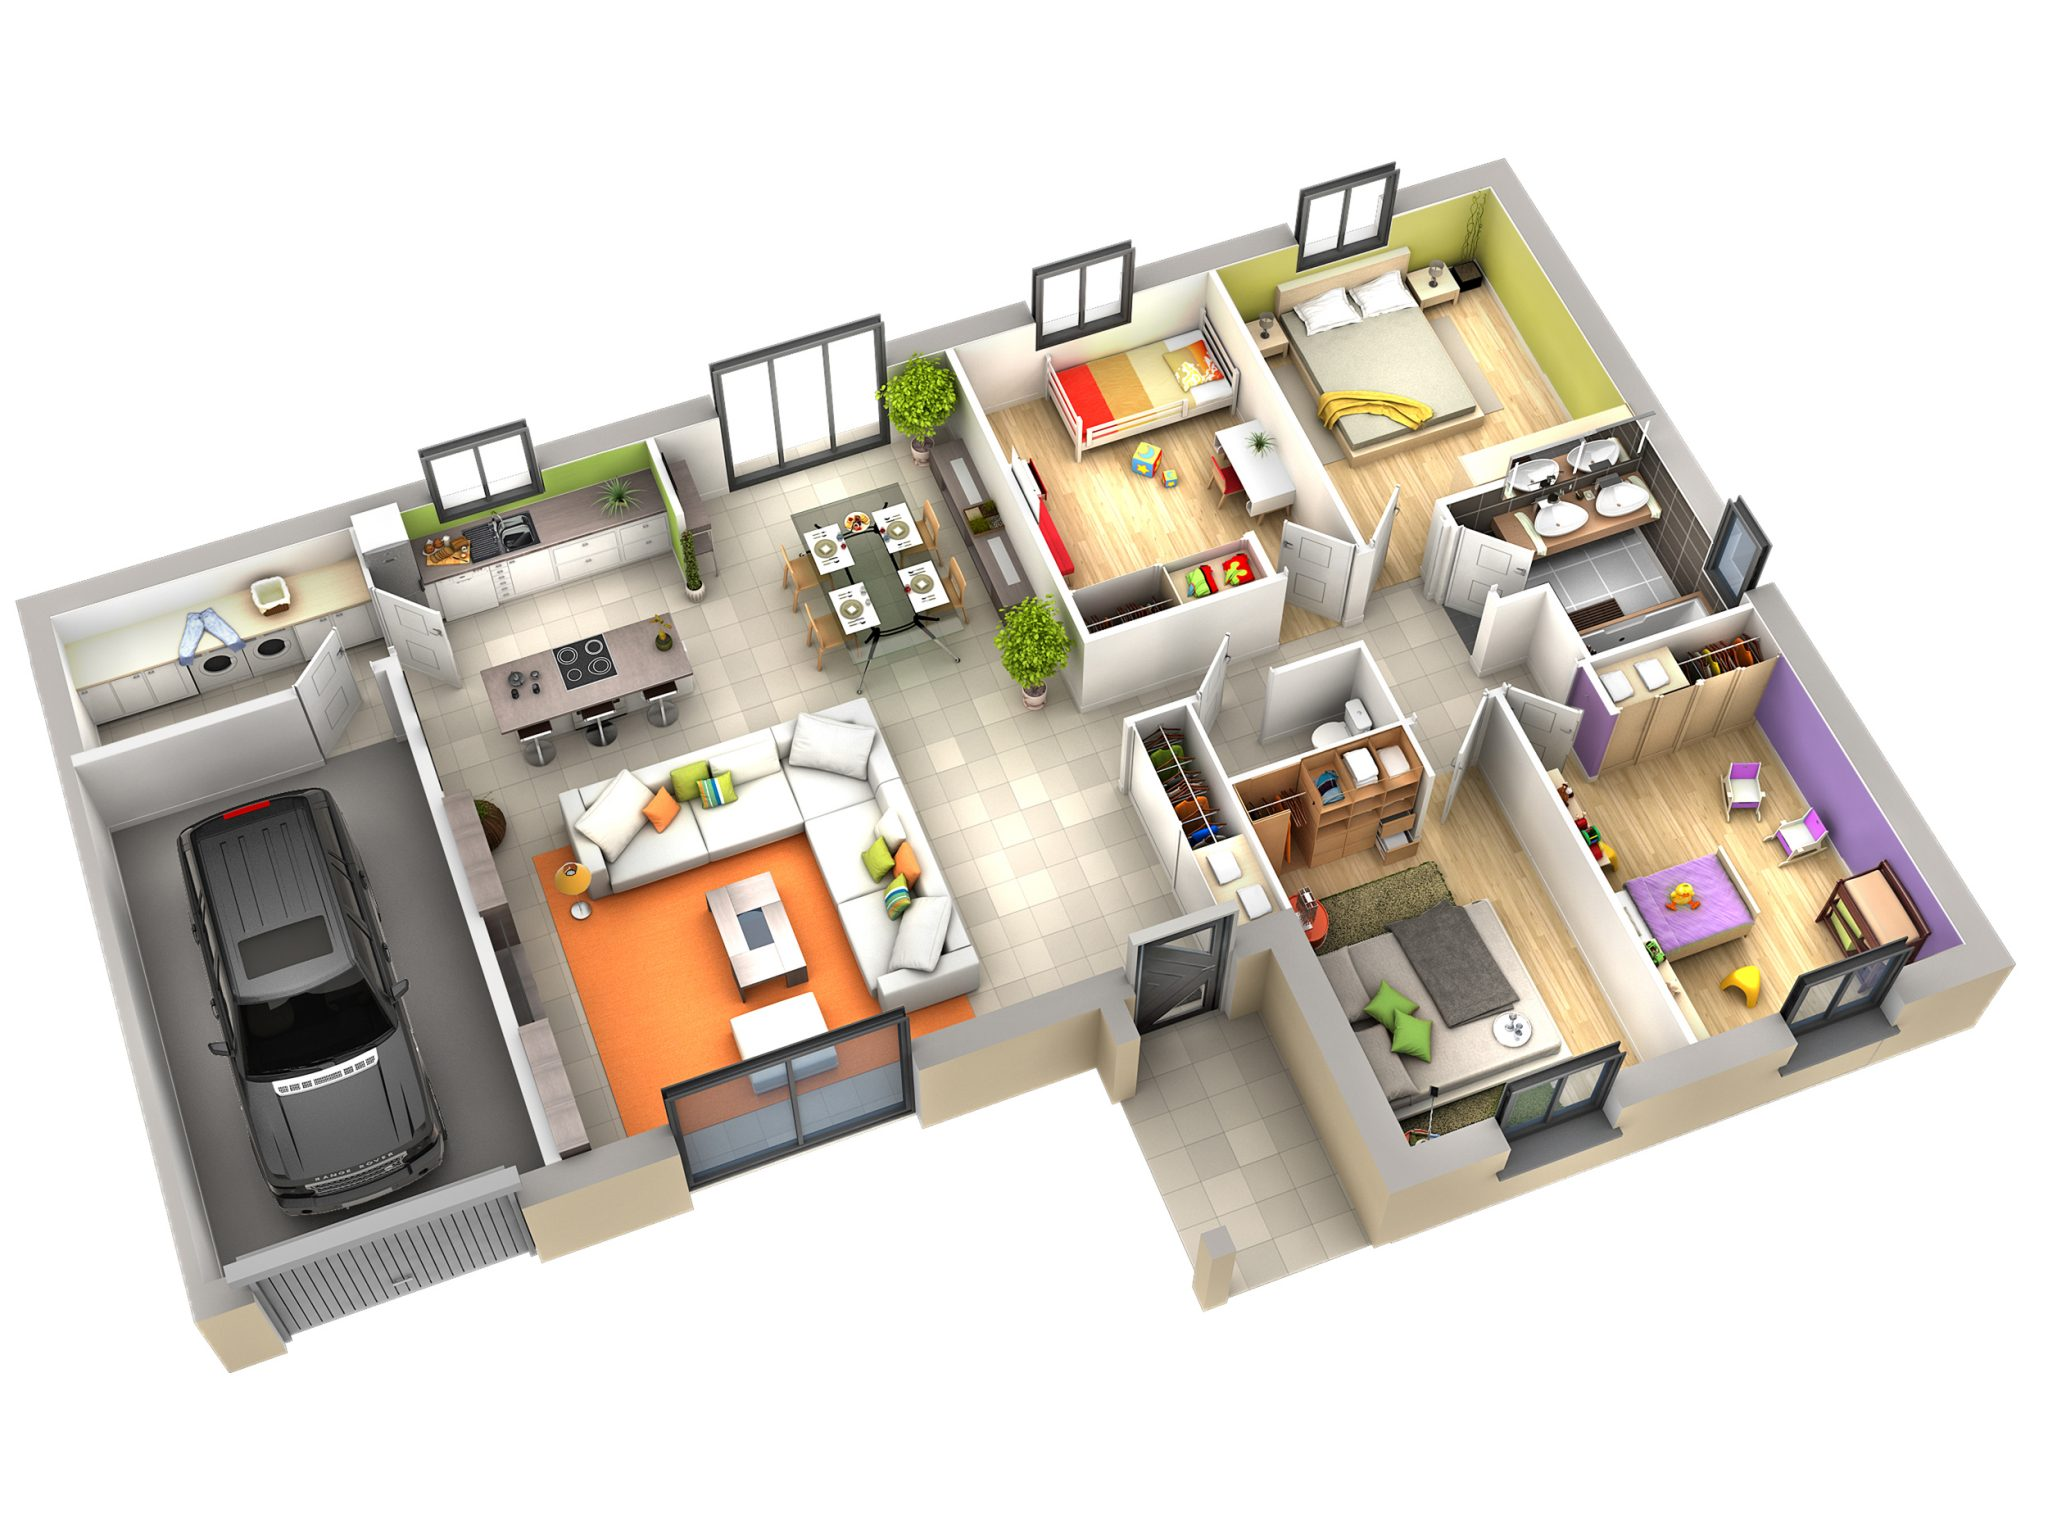 Plan interieur de maison l 39 impression 3d for Plan amenagement interieur maison